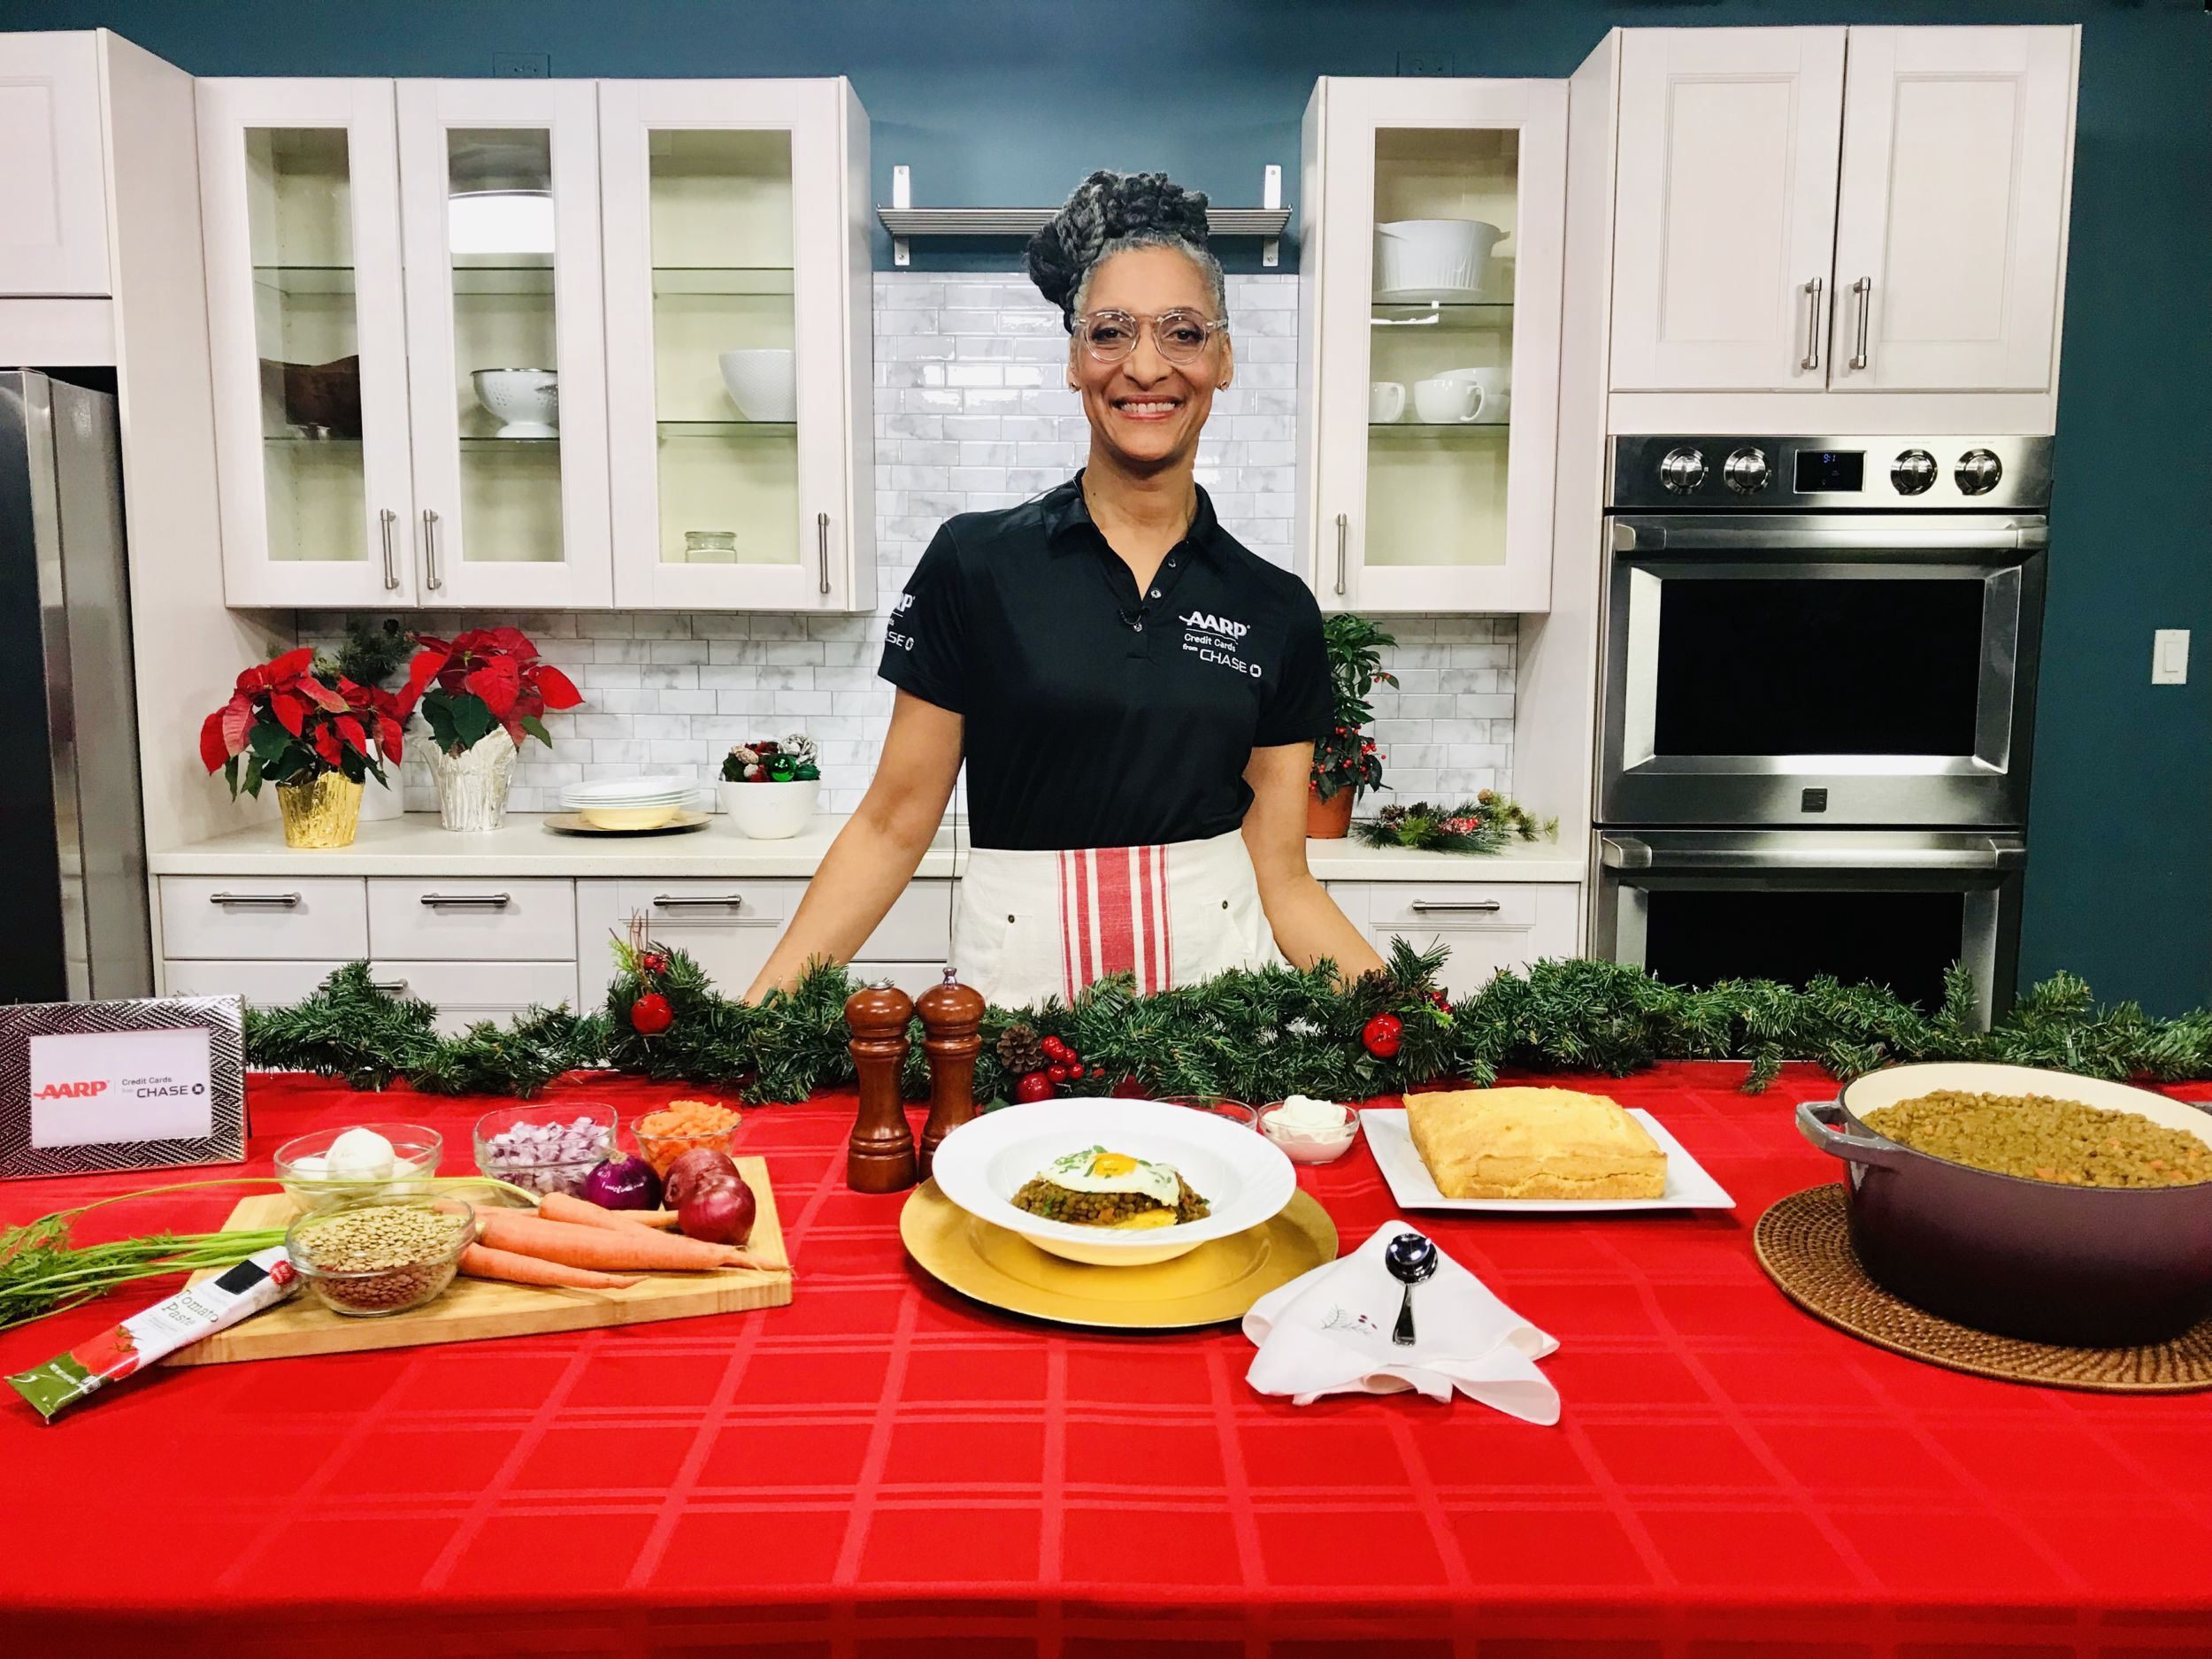 Carla Hall sheds light on a food issue affecting millions of people